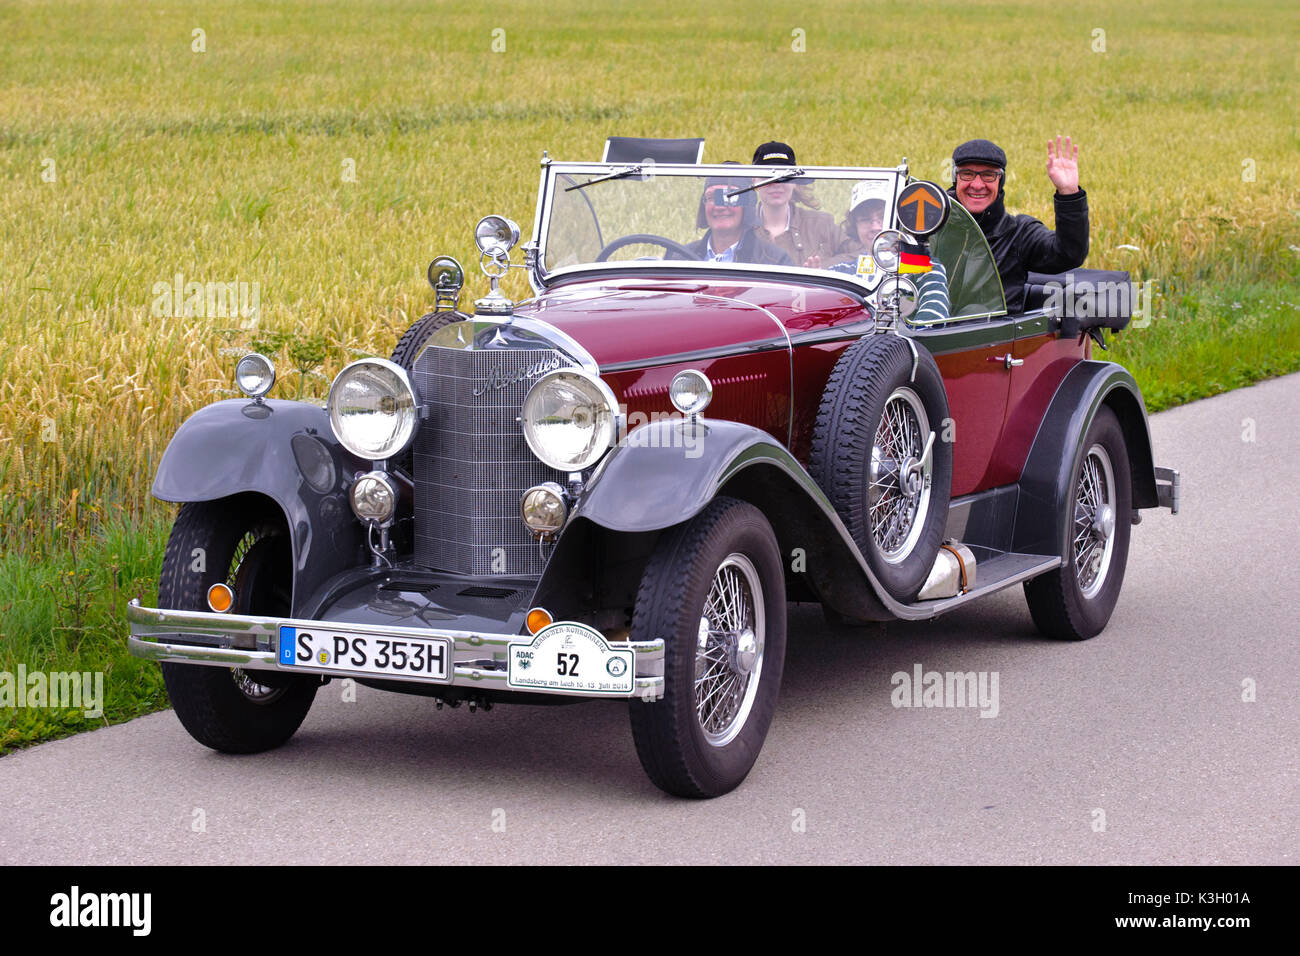 100 Year Old Car Stock Photos & 100 Year Old Car Stock Images - Alamy